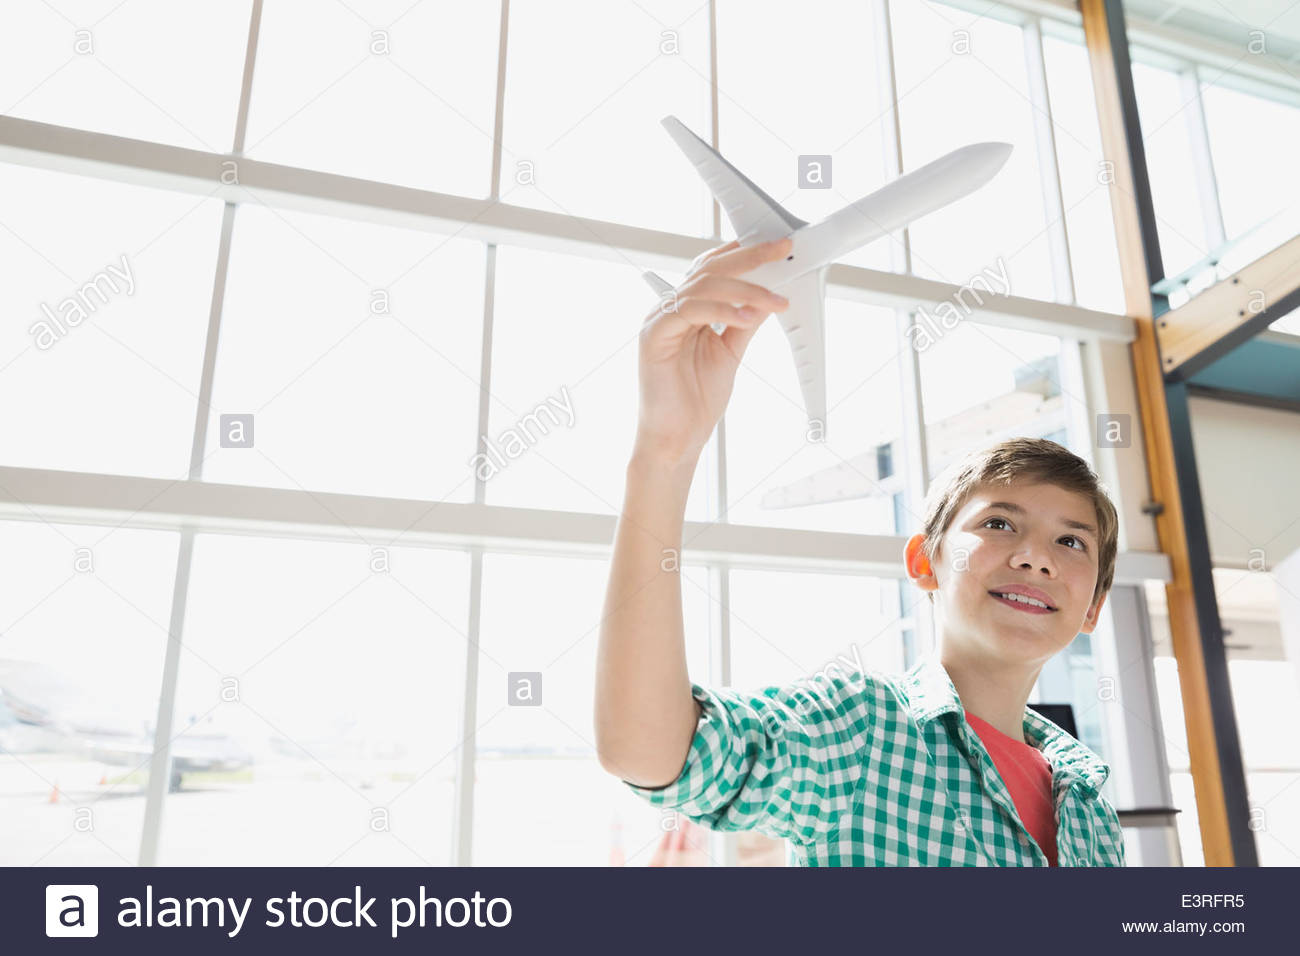 Boy playing with toy airplane in airport - Stock Image